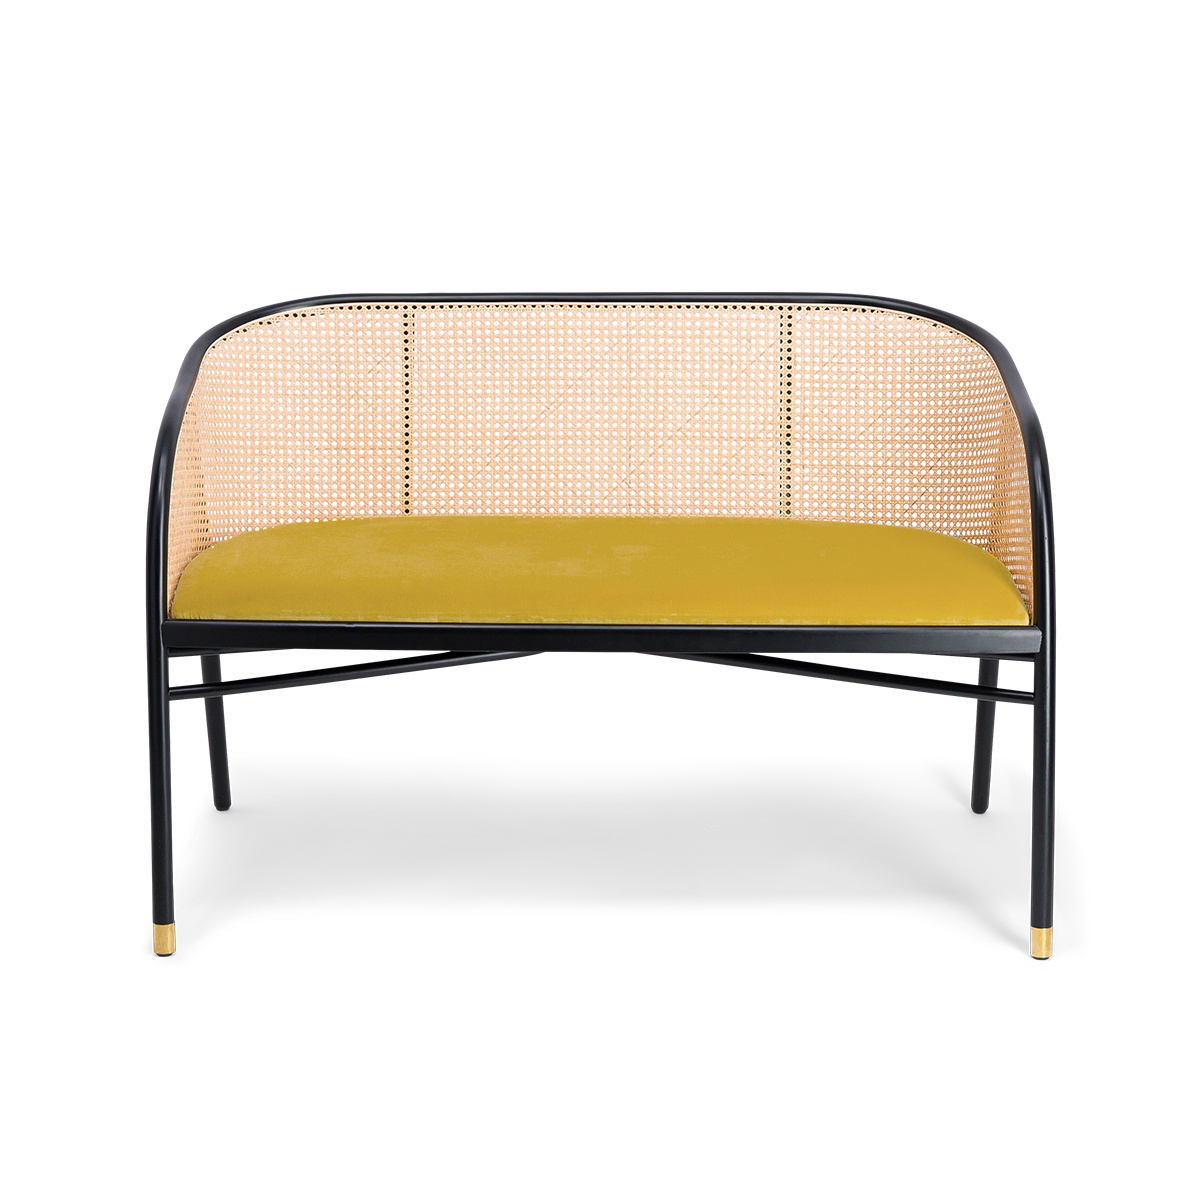 Cavallo Sofa, Yellow Velvet with Black Lacquered Frame